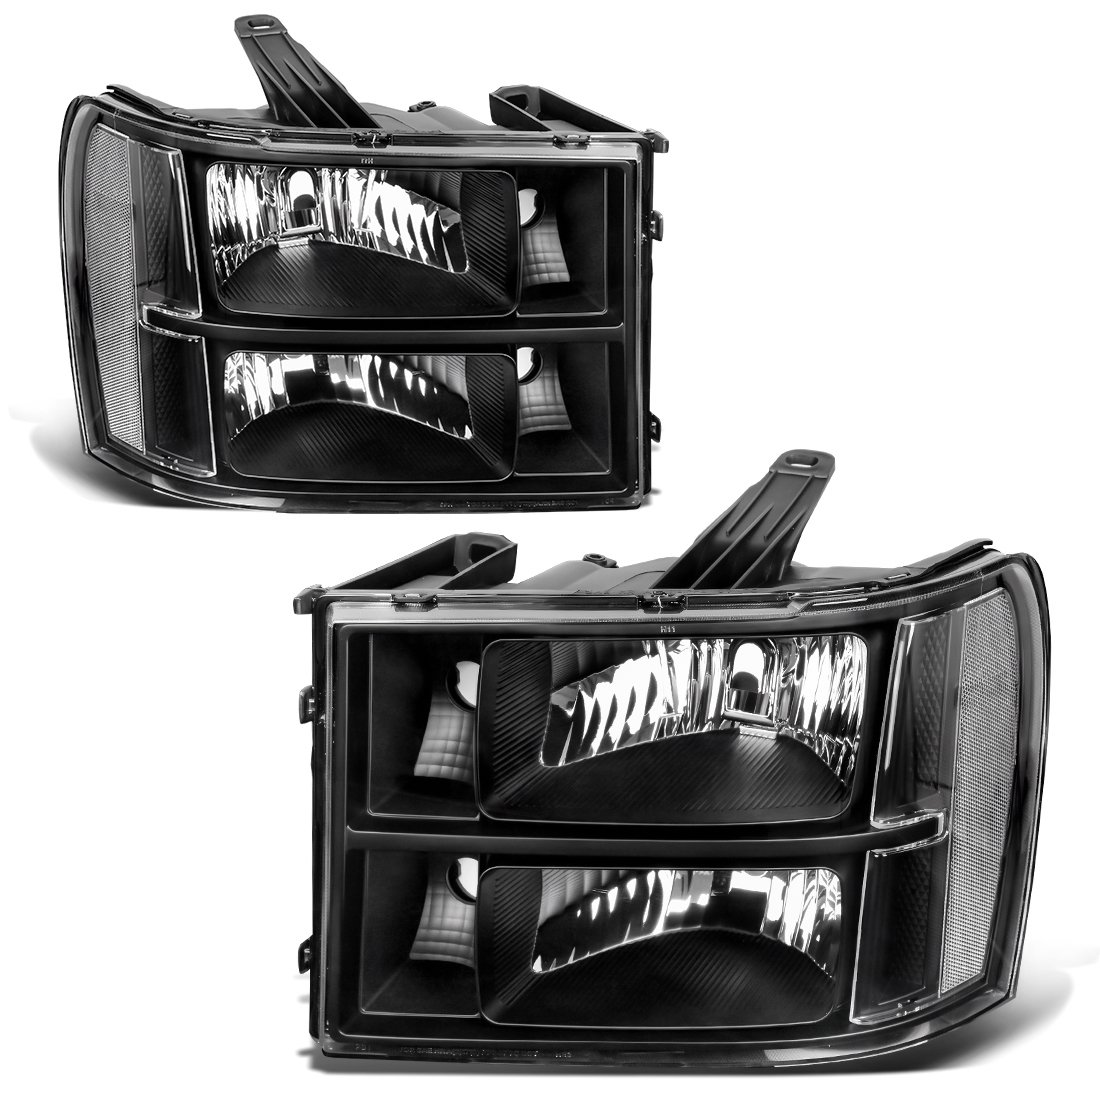 For 2007-2014 GMC Sierra 1500/2500HD/3500HD Headlight Assembly Headlamps Replacement Black Housing Clear Lens (Driver and Passenger Side)